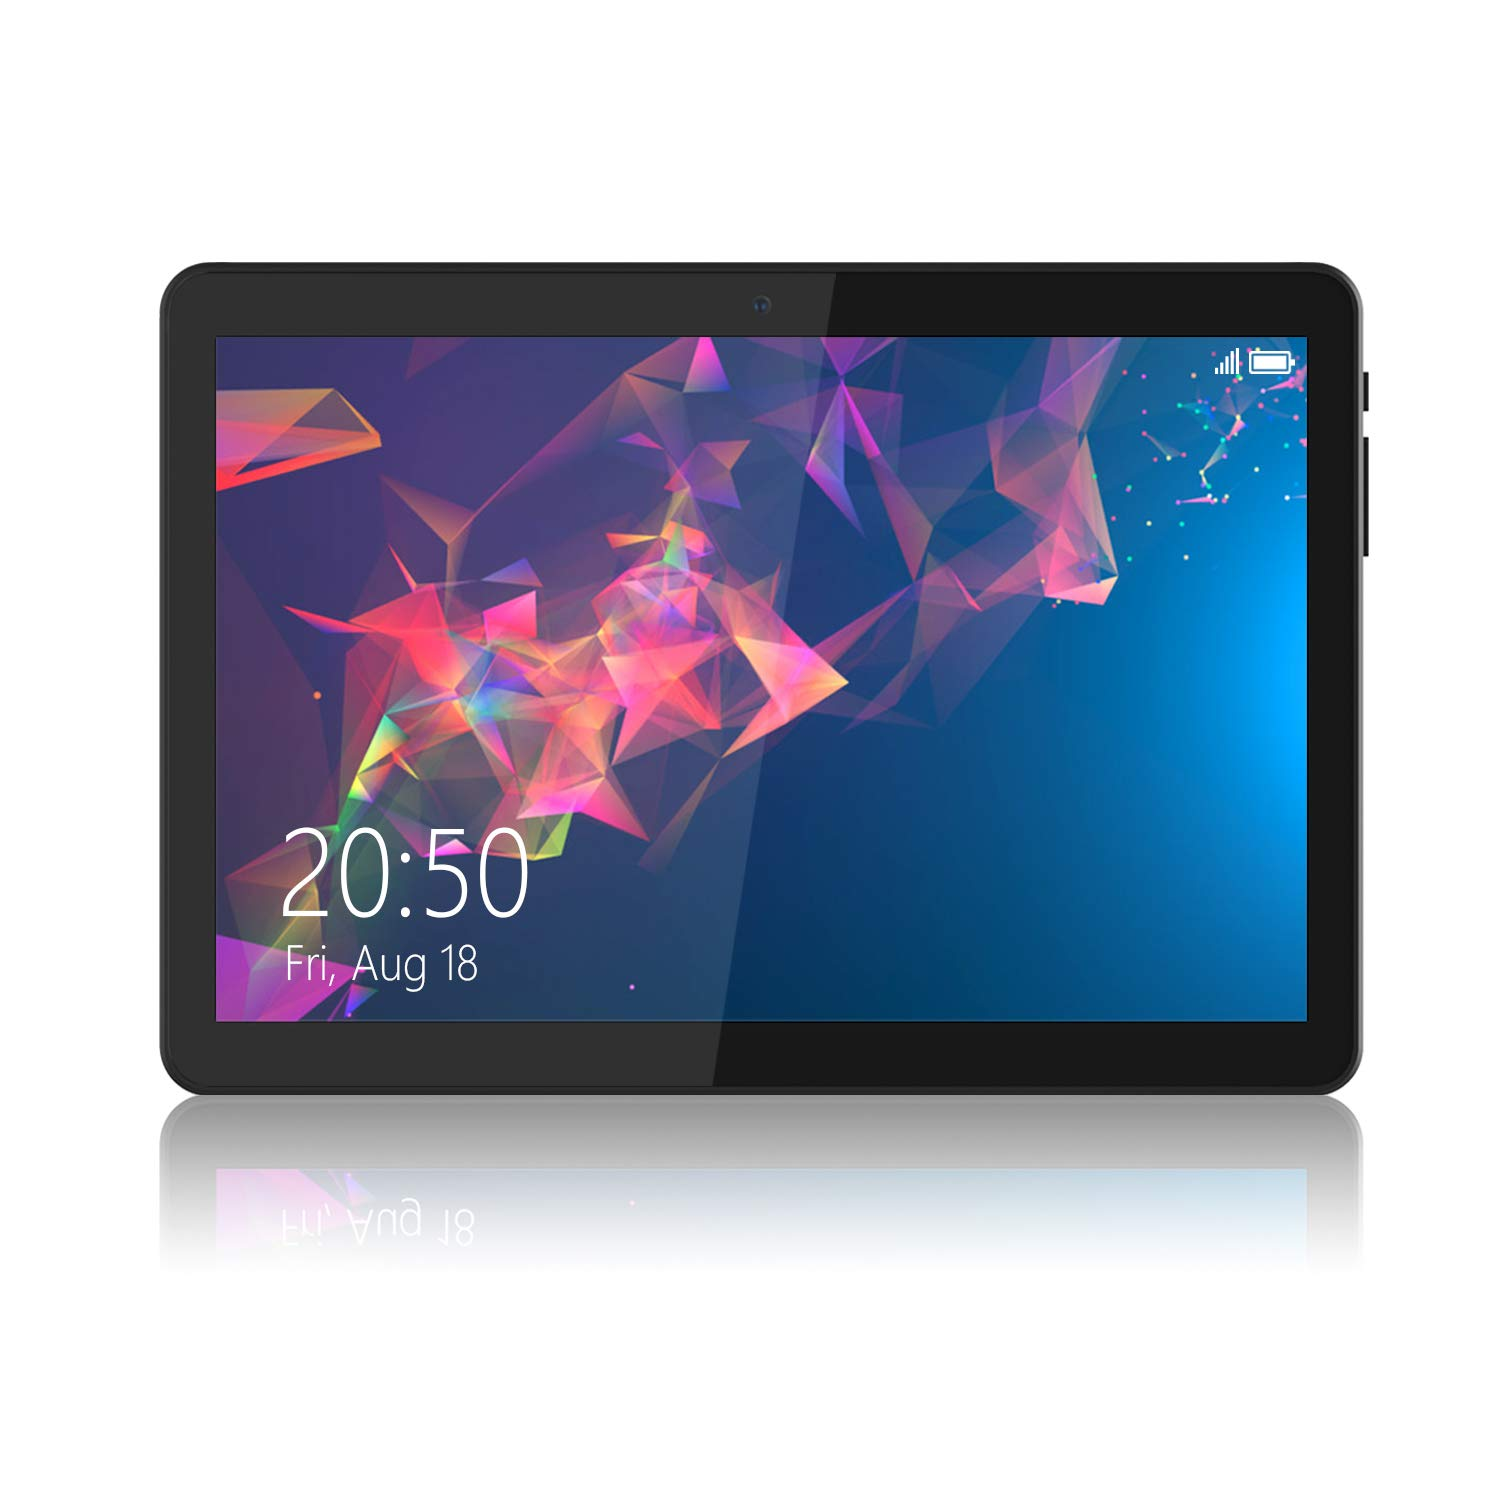 Android Tablet 10 Inch, Phablet Unlocked 3G [Android Go 8.1] [GMS Certified] 10 Inch Tablet with Dual Sim Card Slots and Cameras, 1280 x 800 IPS, 16GB, Bluetooth, WiFi, GPS, OTG (Black)